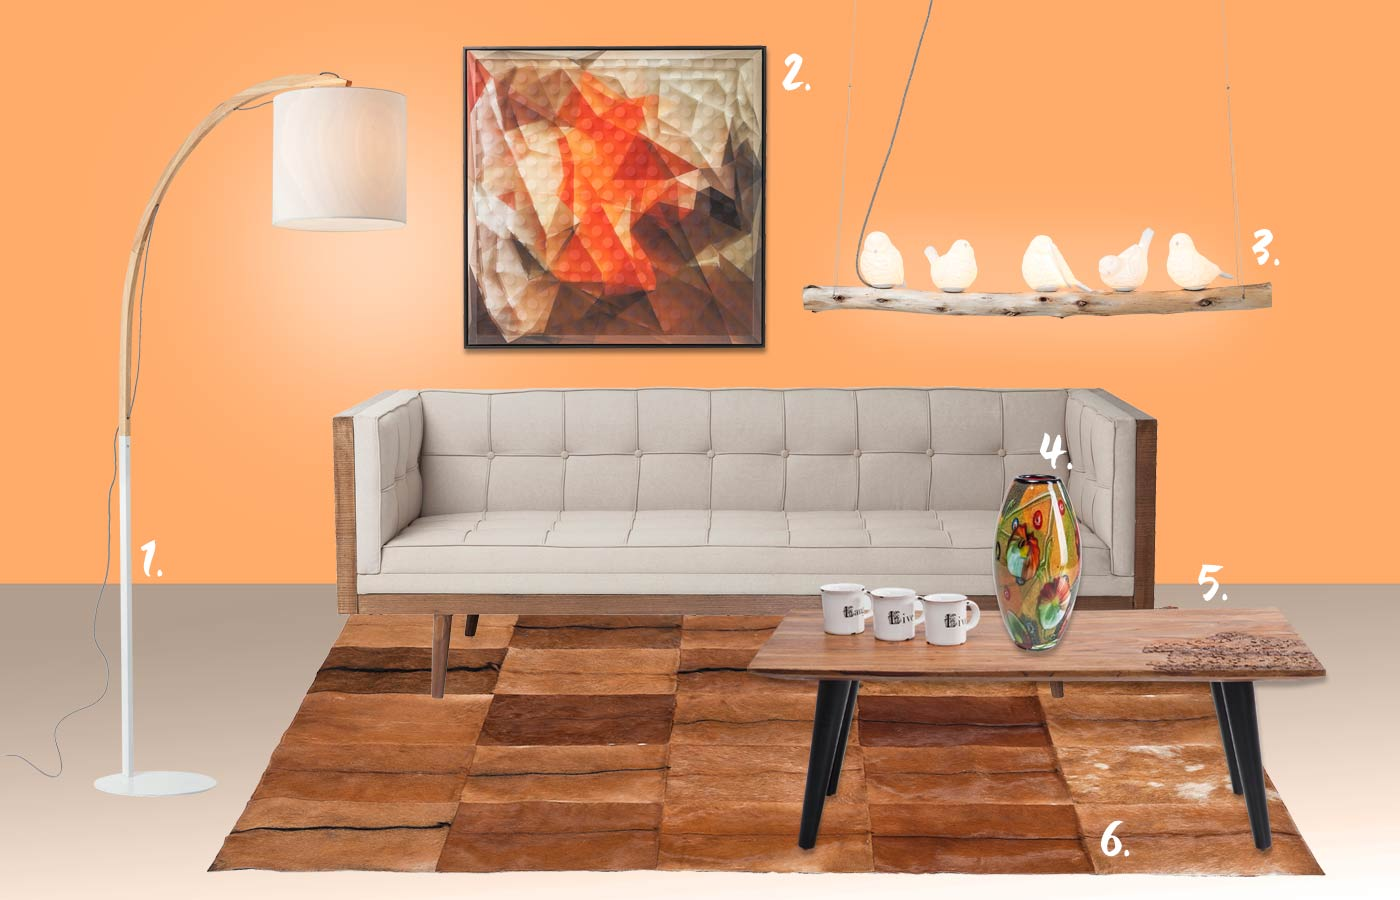 Full Size of Kare Design Sofa Bed Proud Furniture Sales Infinity List Couch Sale Leder One Three Styles Inspirations For A Change Türkis Stoff 3 Sitzer Grau Rahaus Petrol Sofa Kare Sofa